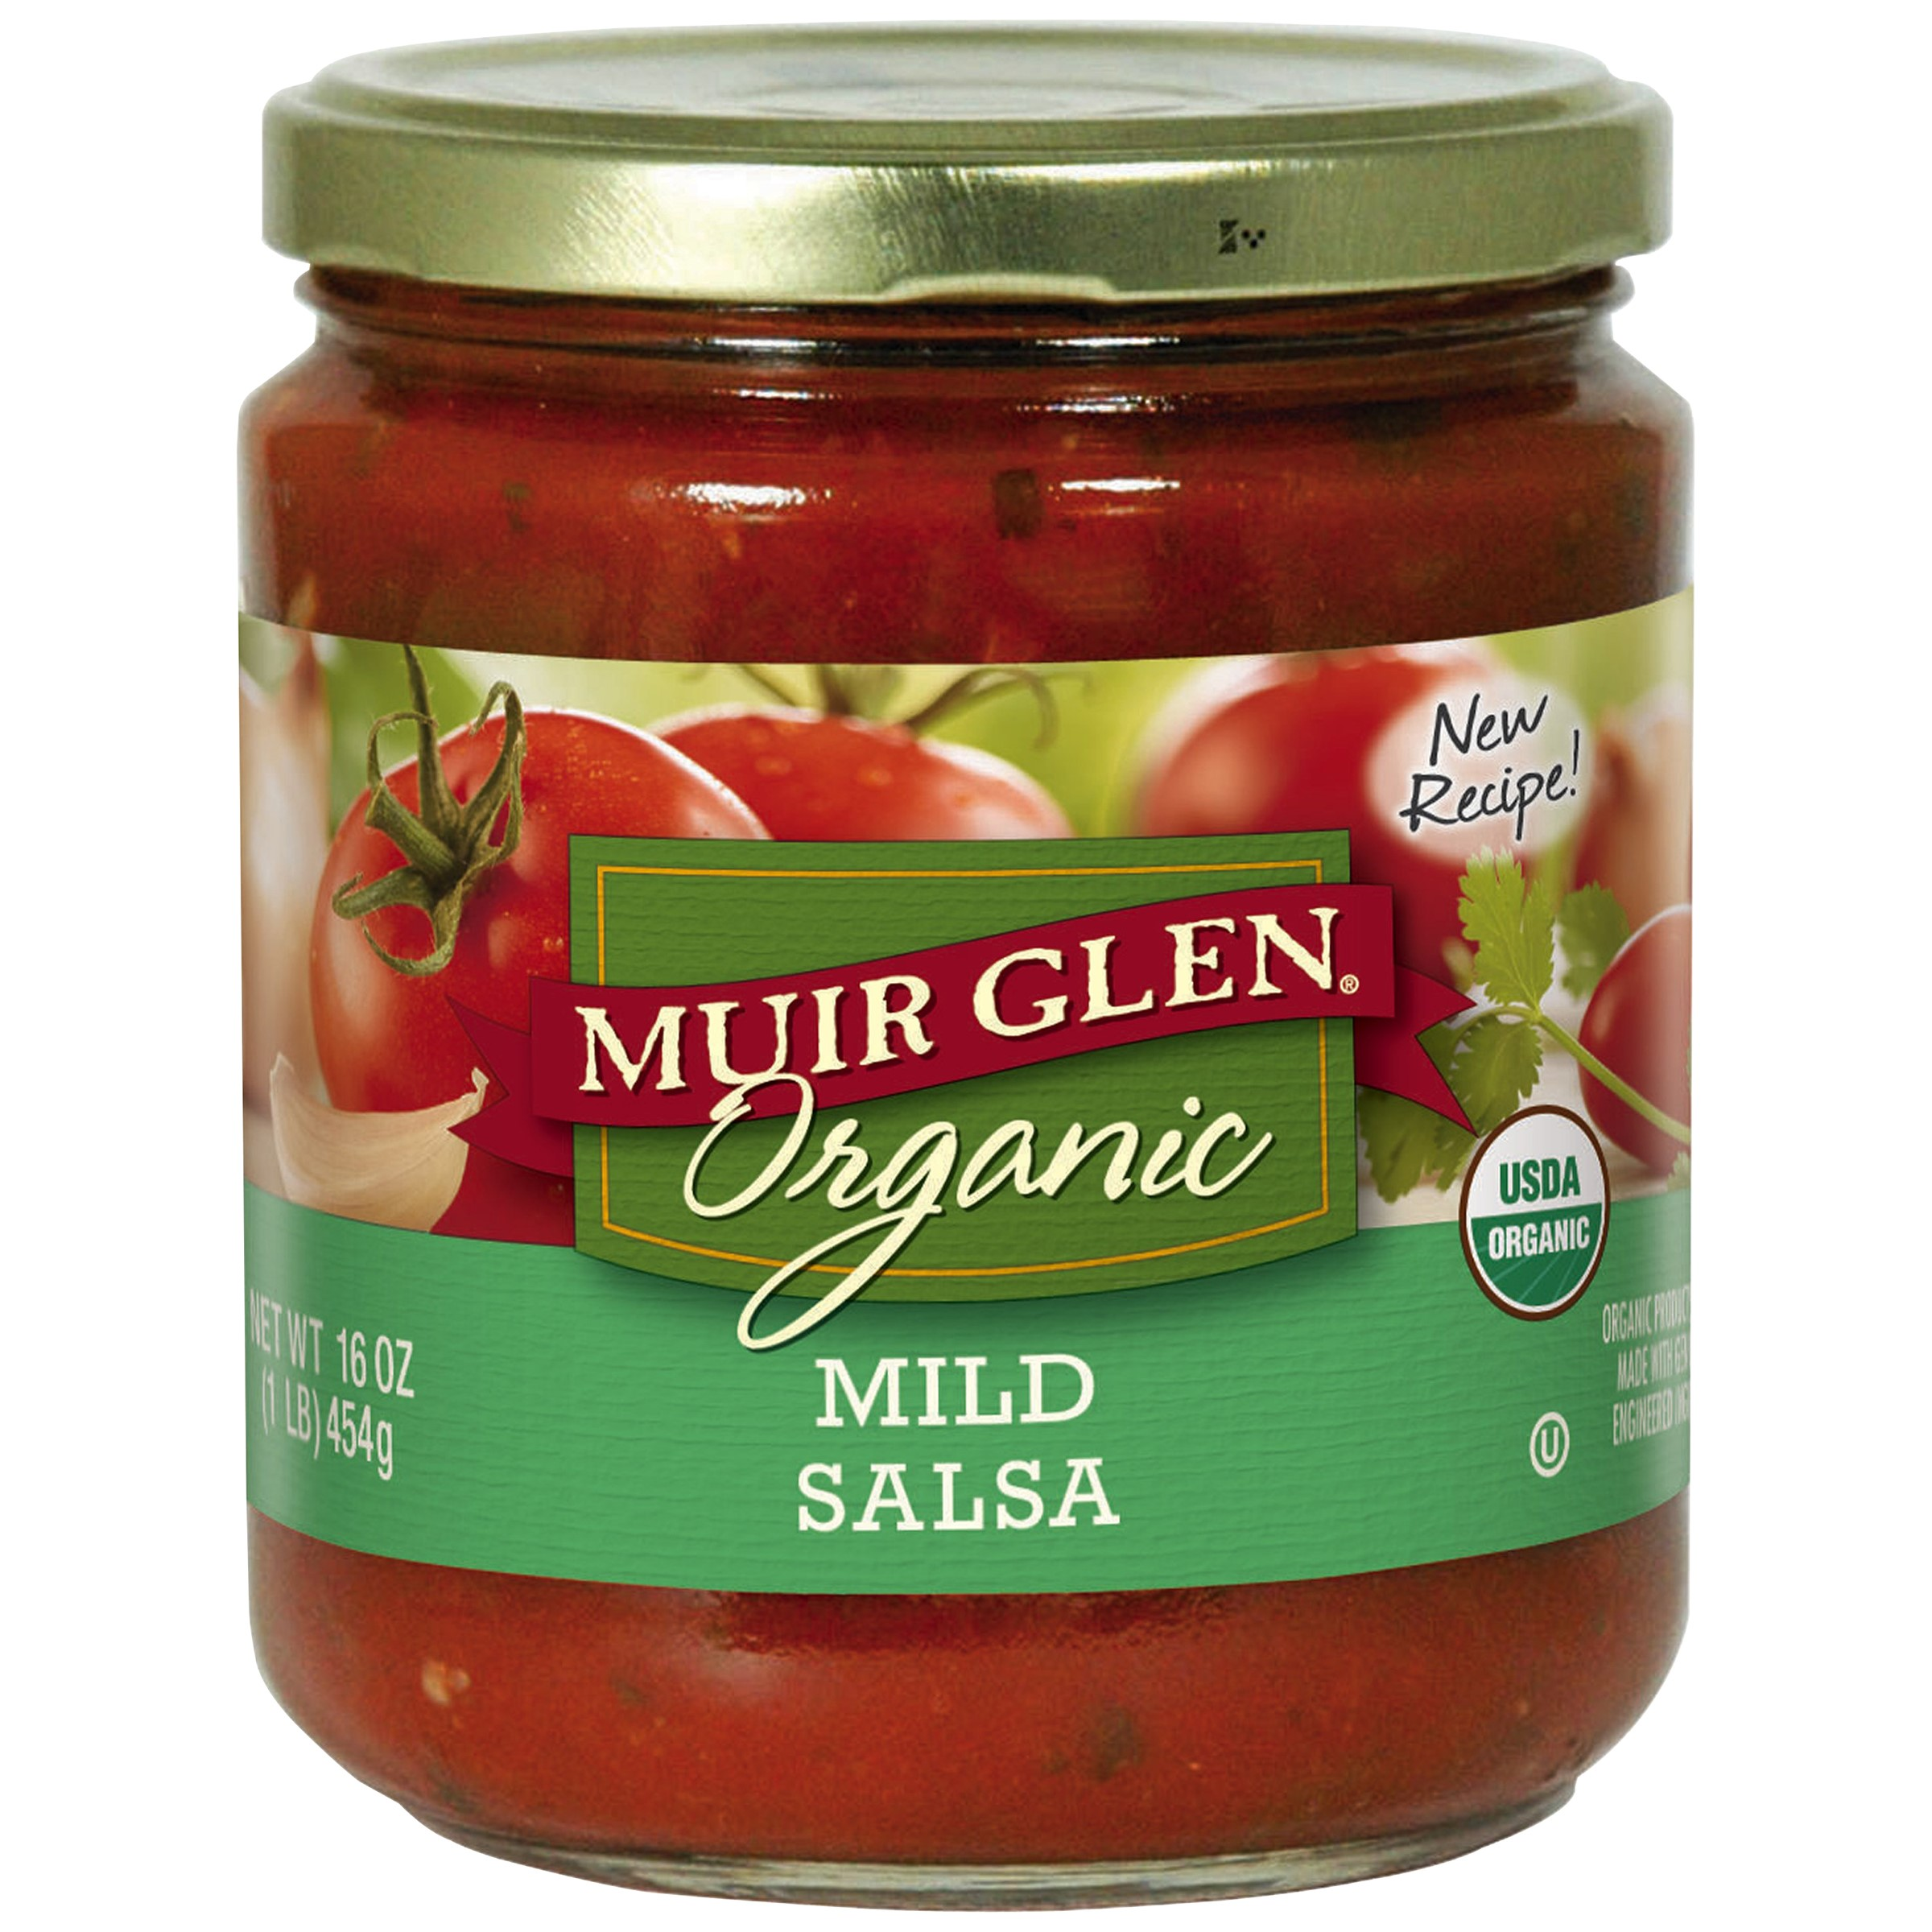 Muir Glen Organic Mild Salsa 16 oz Jar by General Mills